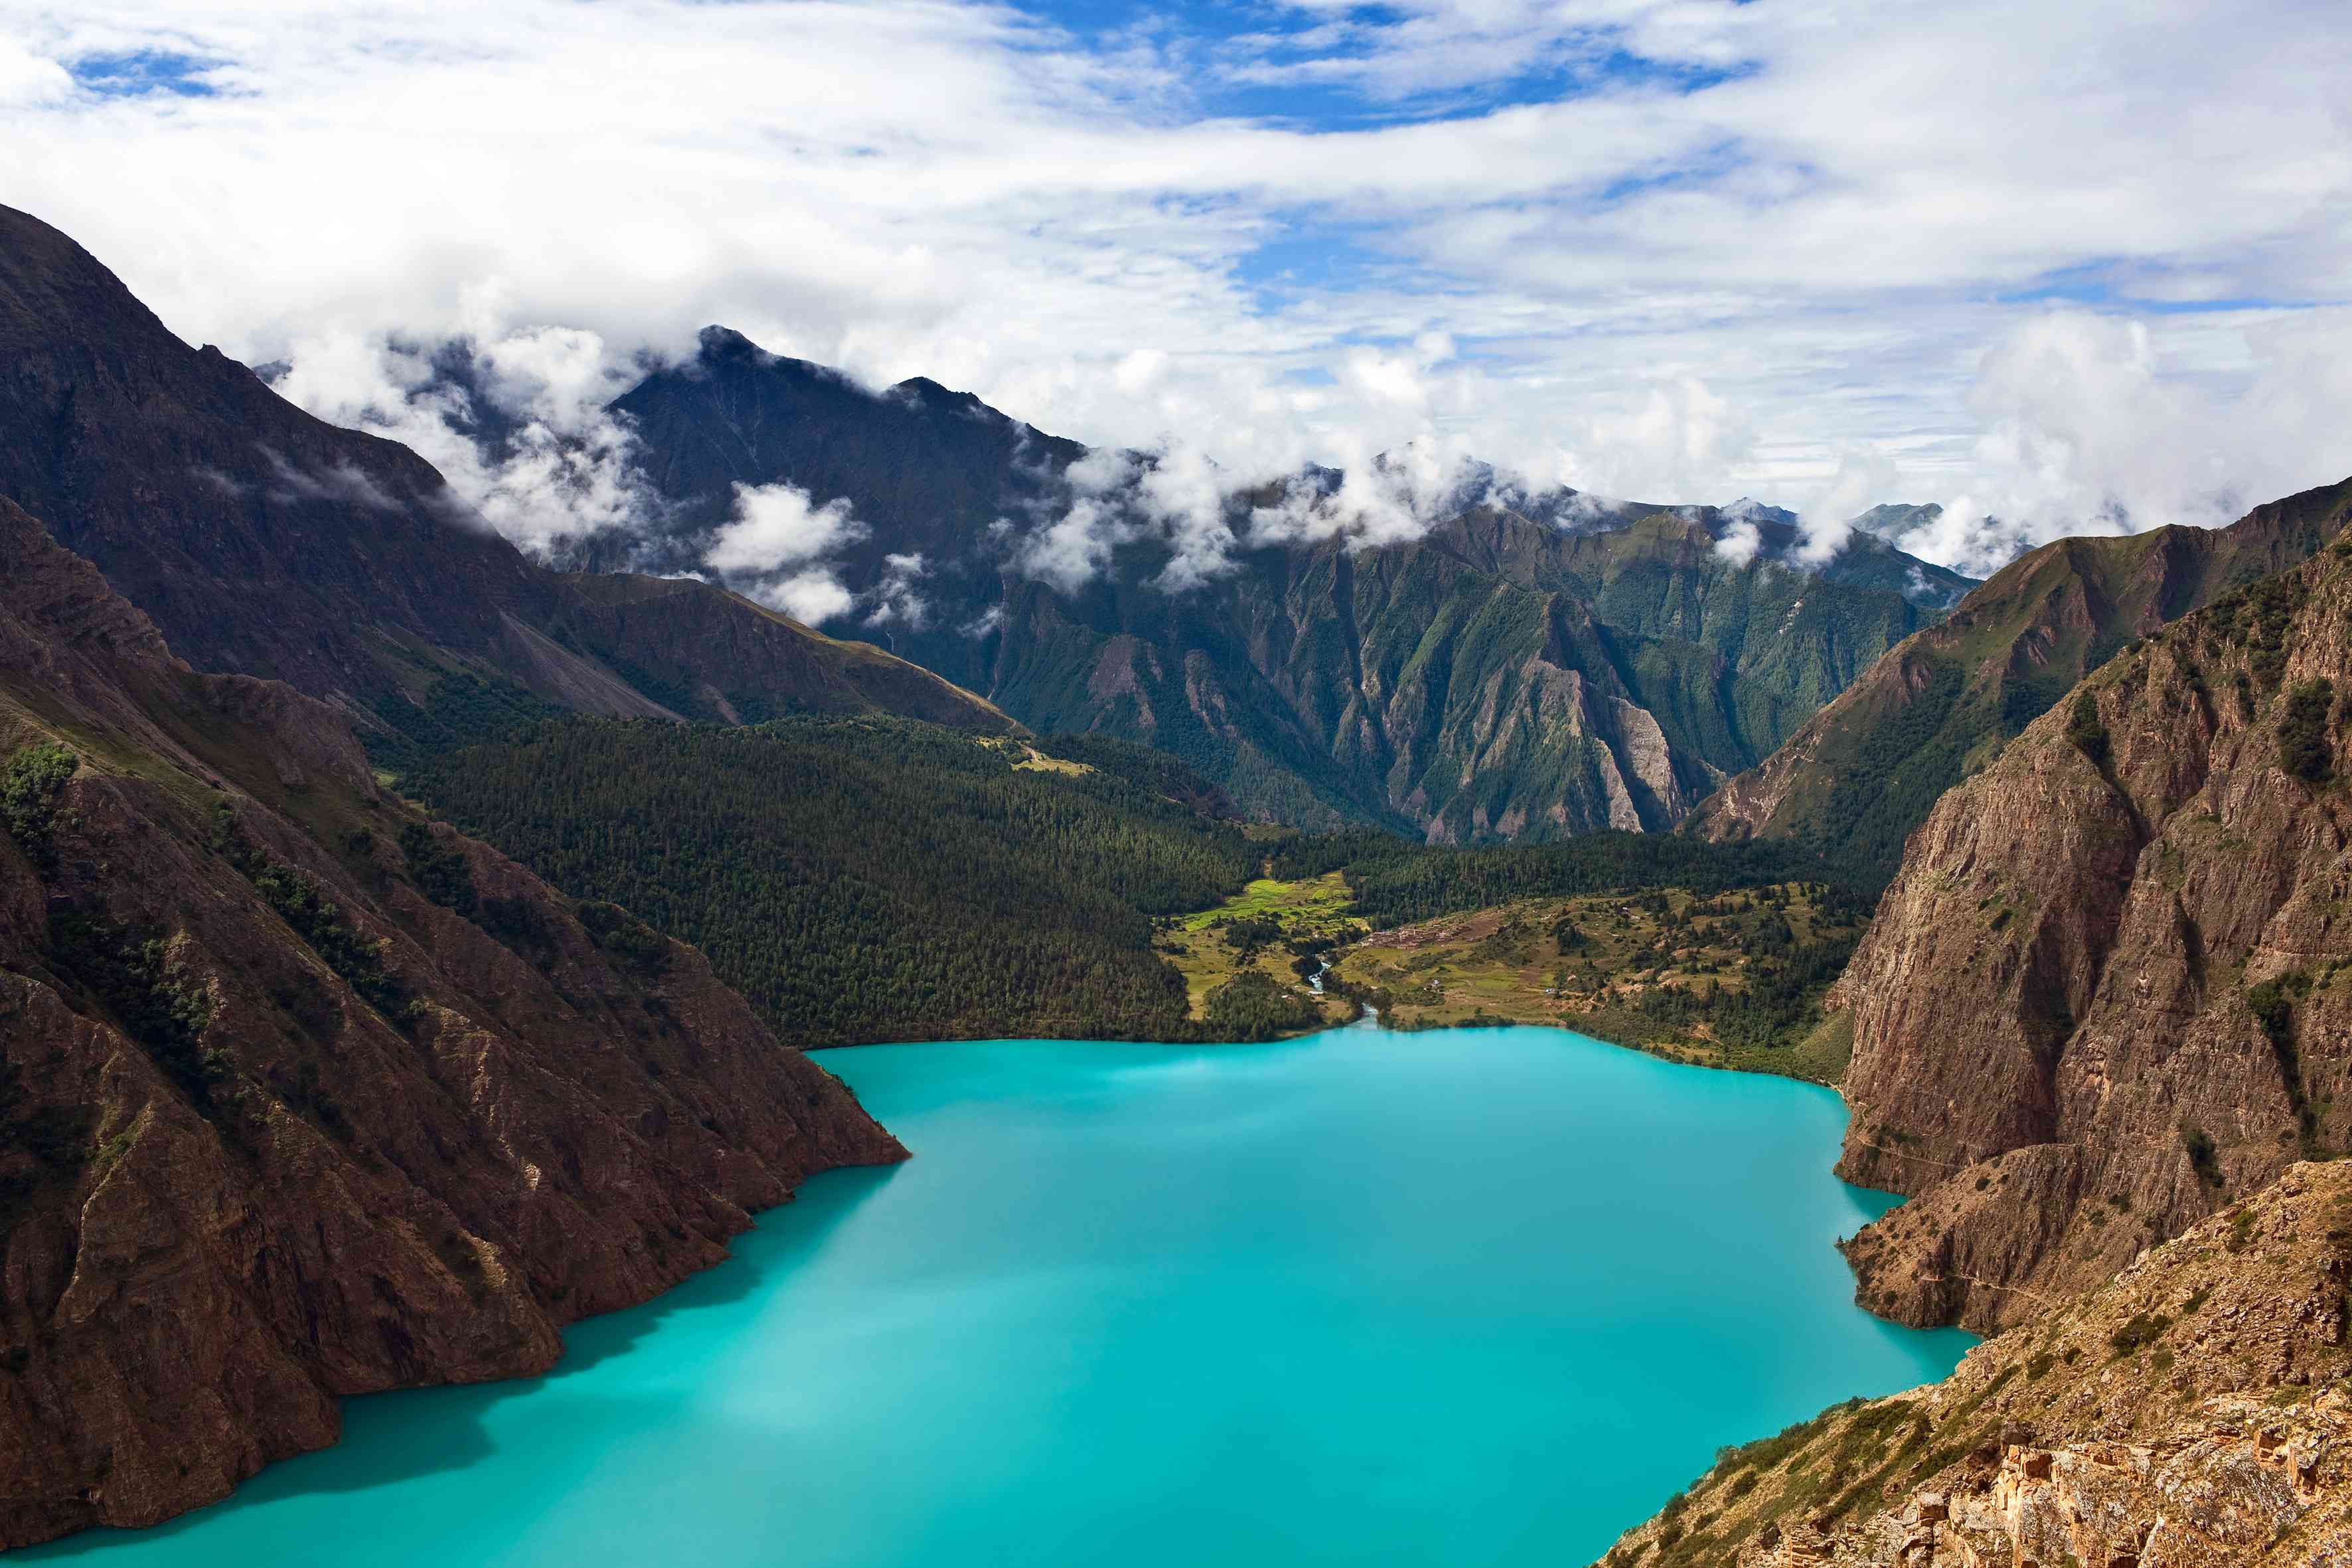 bright turquoise lake surrounded by brown mountains